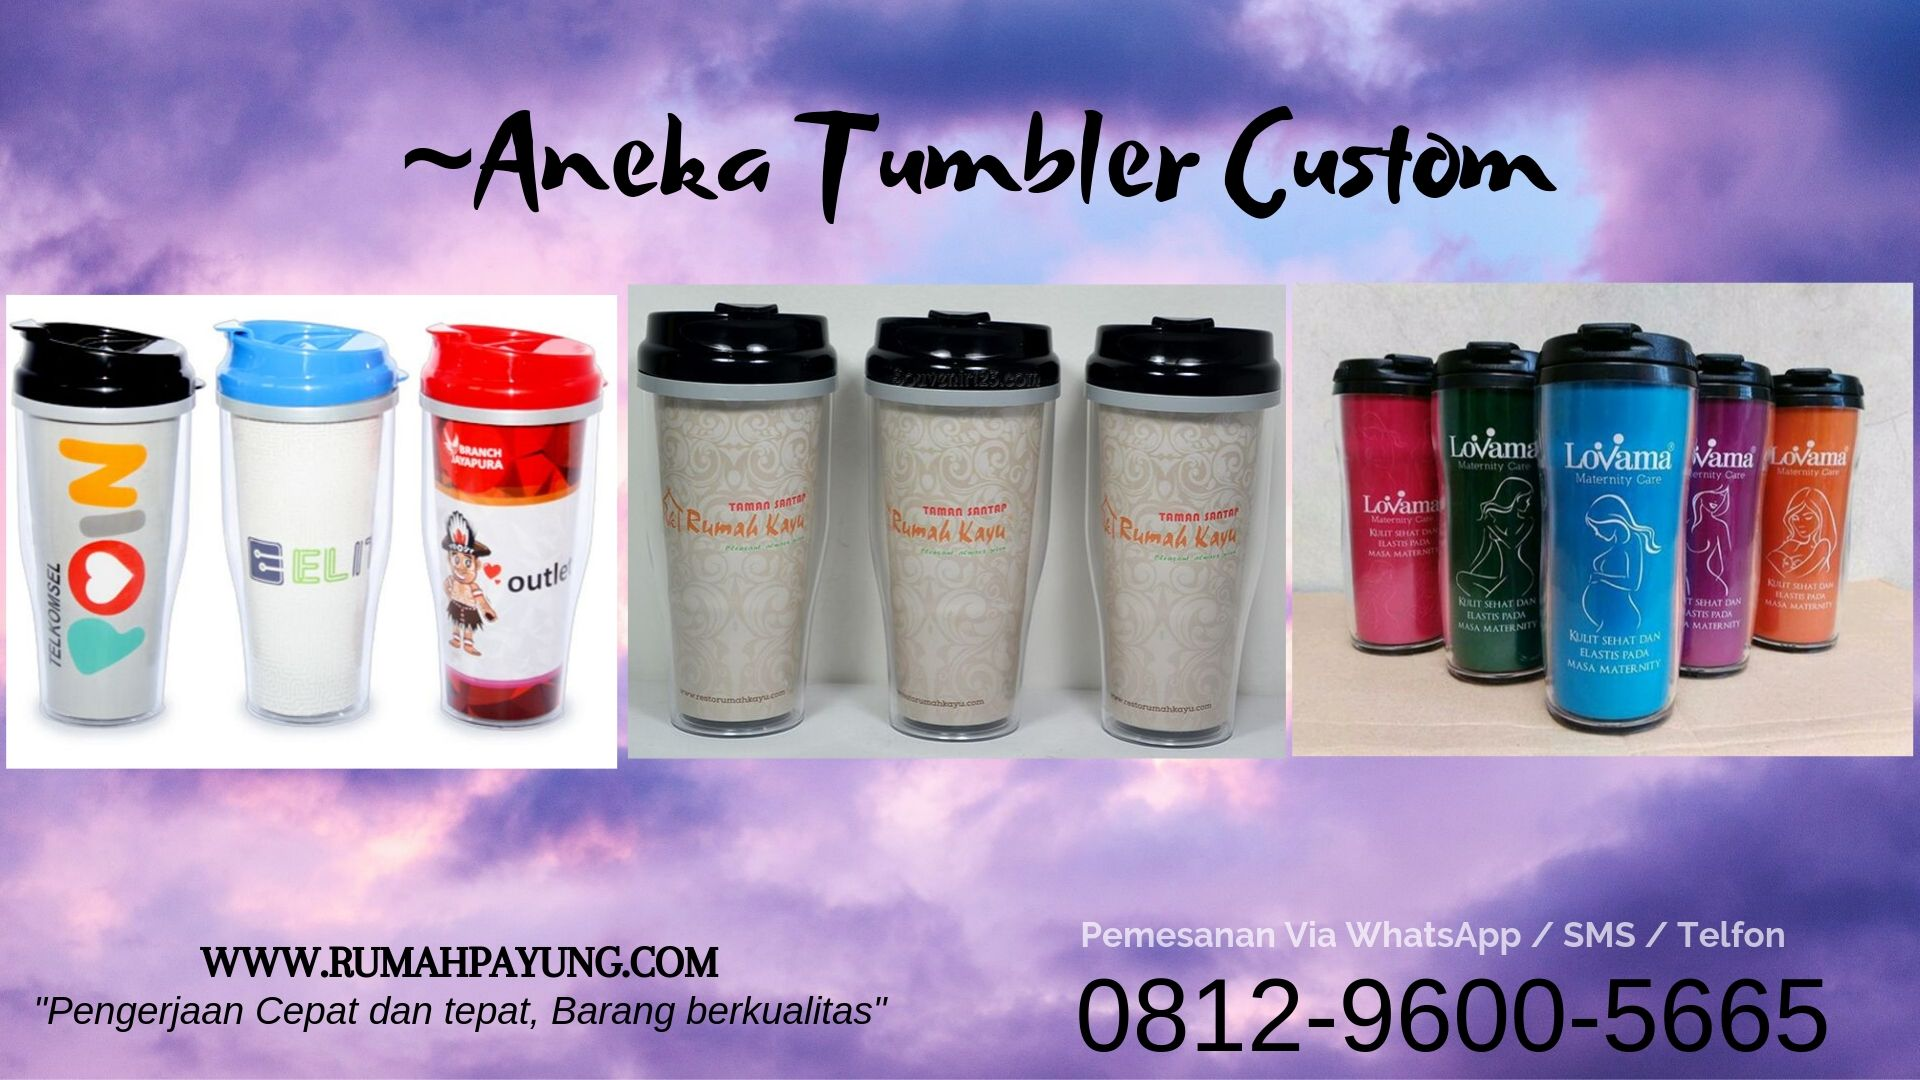 "JUAL GROSIR TUMBLER CUSTOM DESIGN LOGO HARGA TERMURAH DI SALATIGA<span class=""rating-result after_title mr-filter rating-result-12389"">			<span class=""no-rating-results-text"">No ratings yet.</span>		</span>"